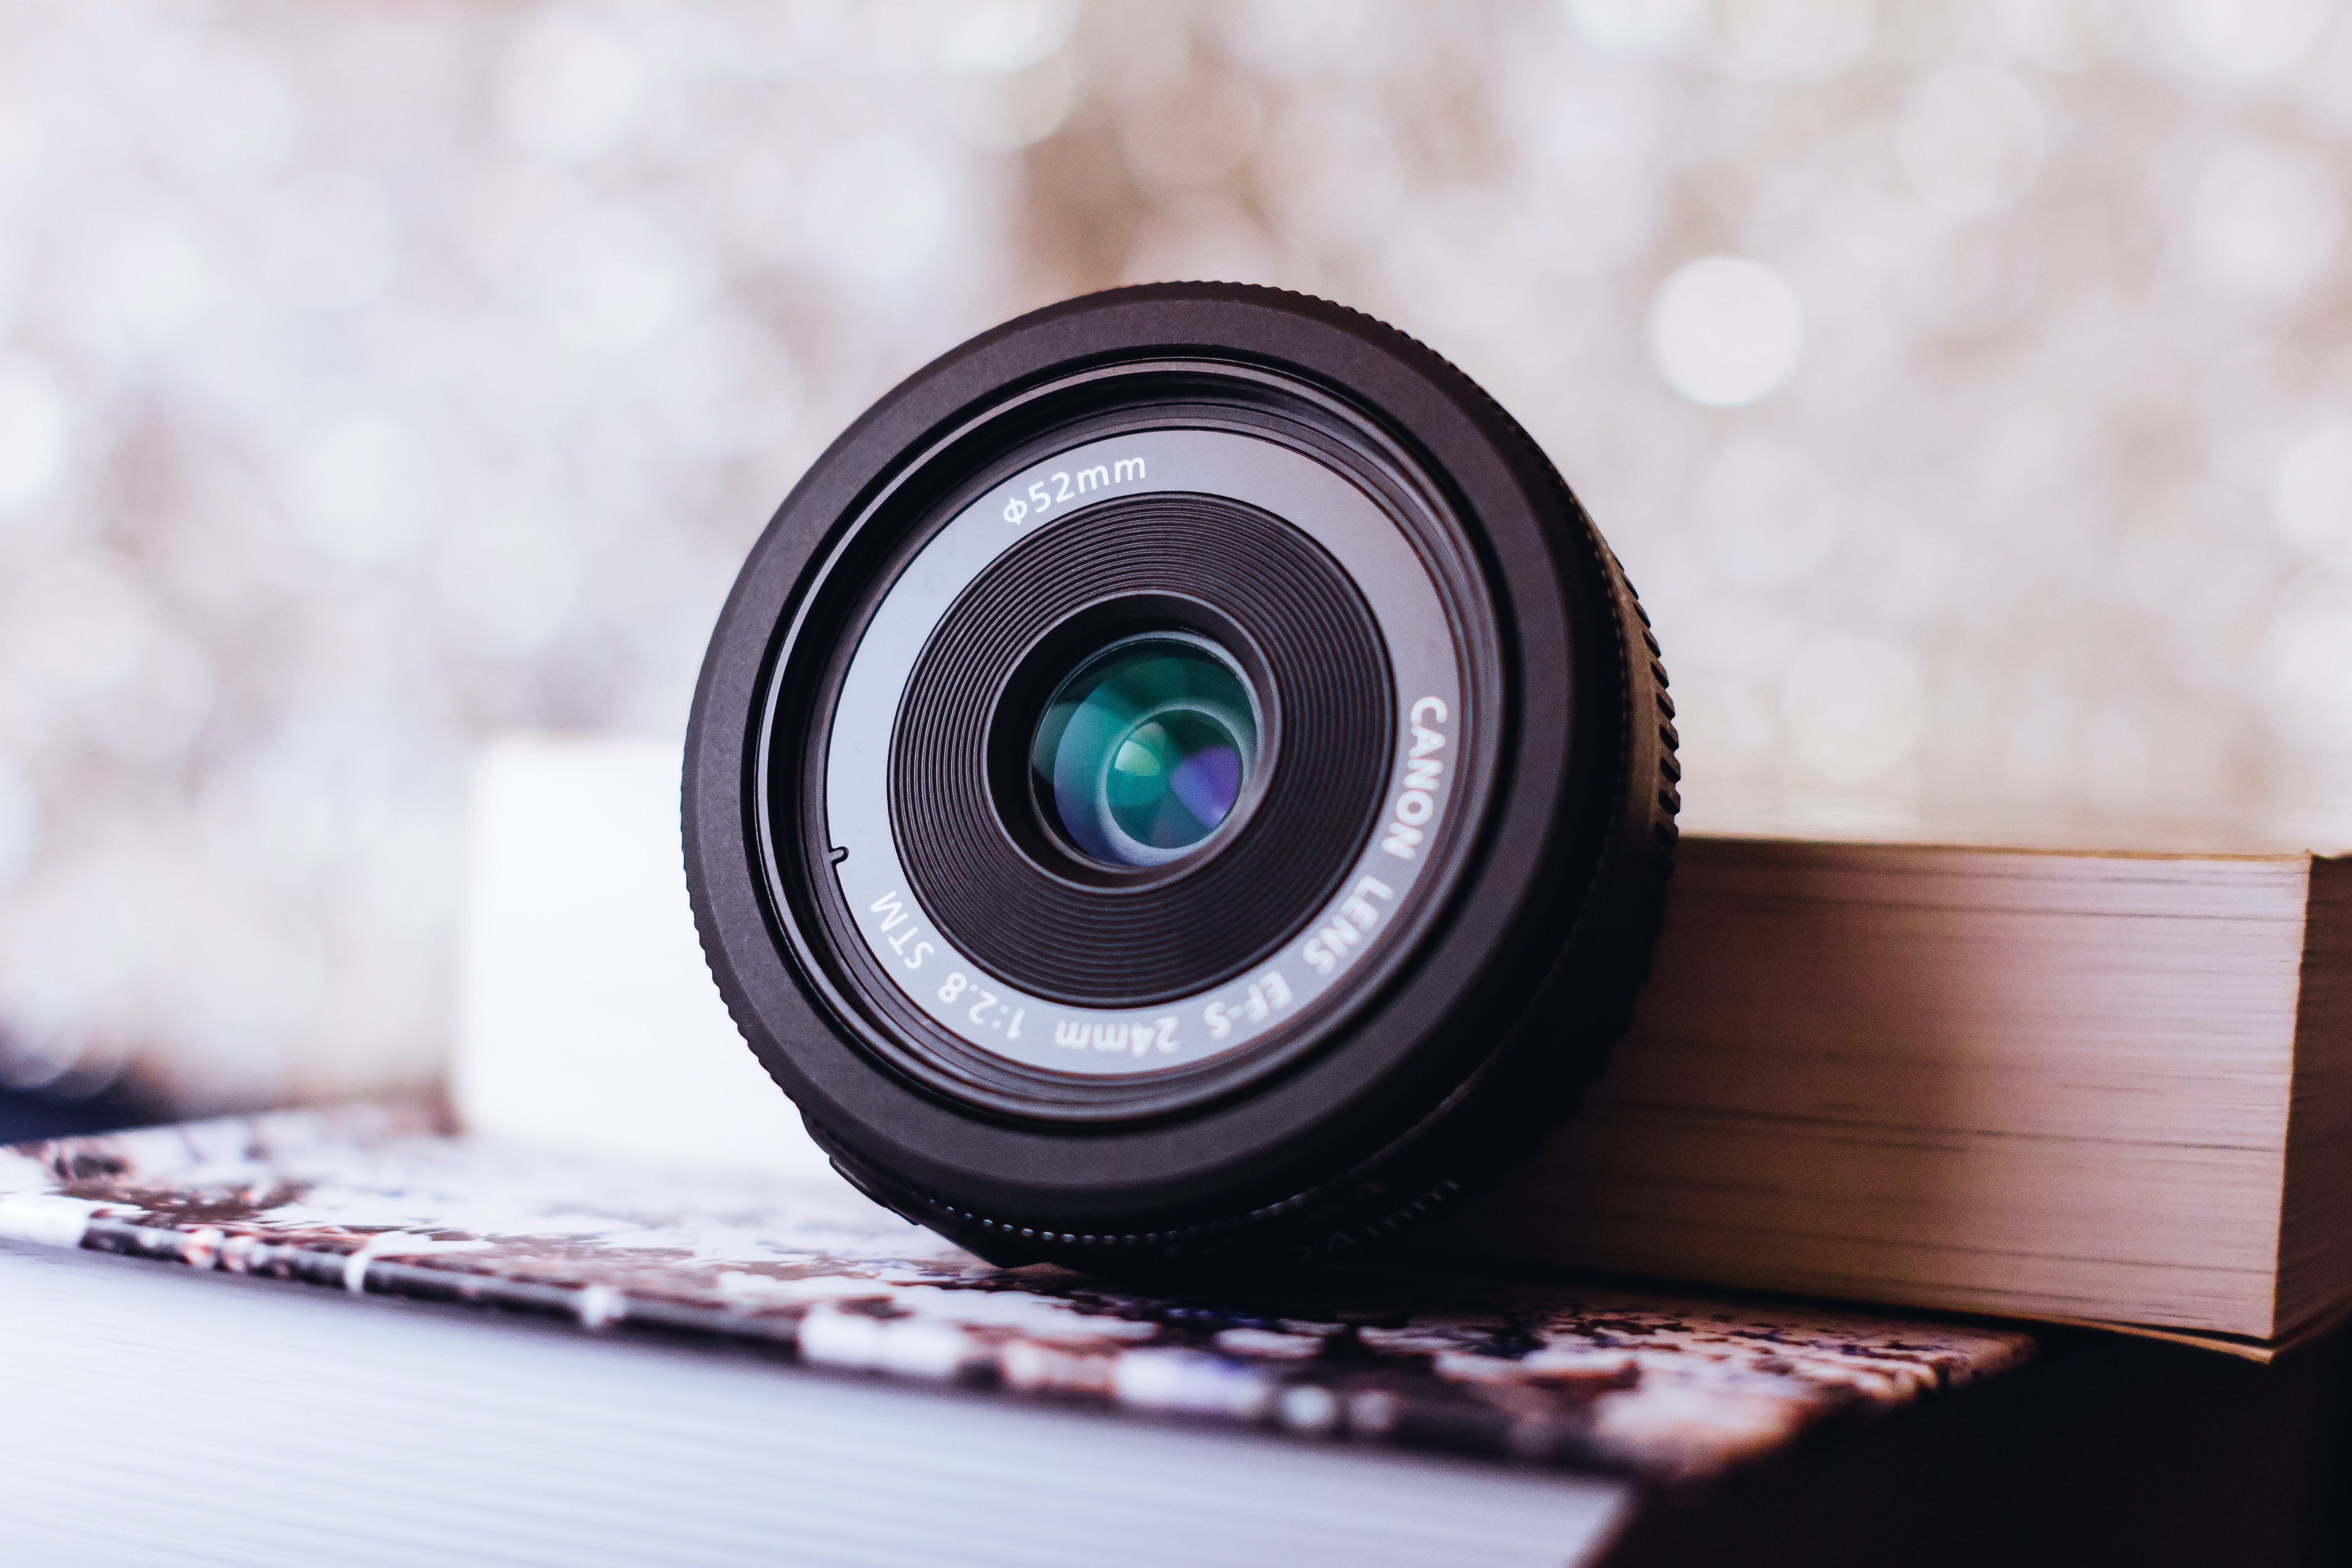 black Canon camera lens leaning on white book